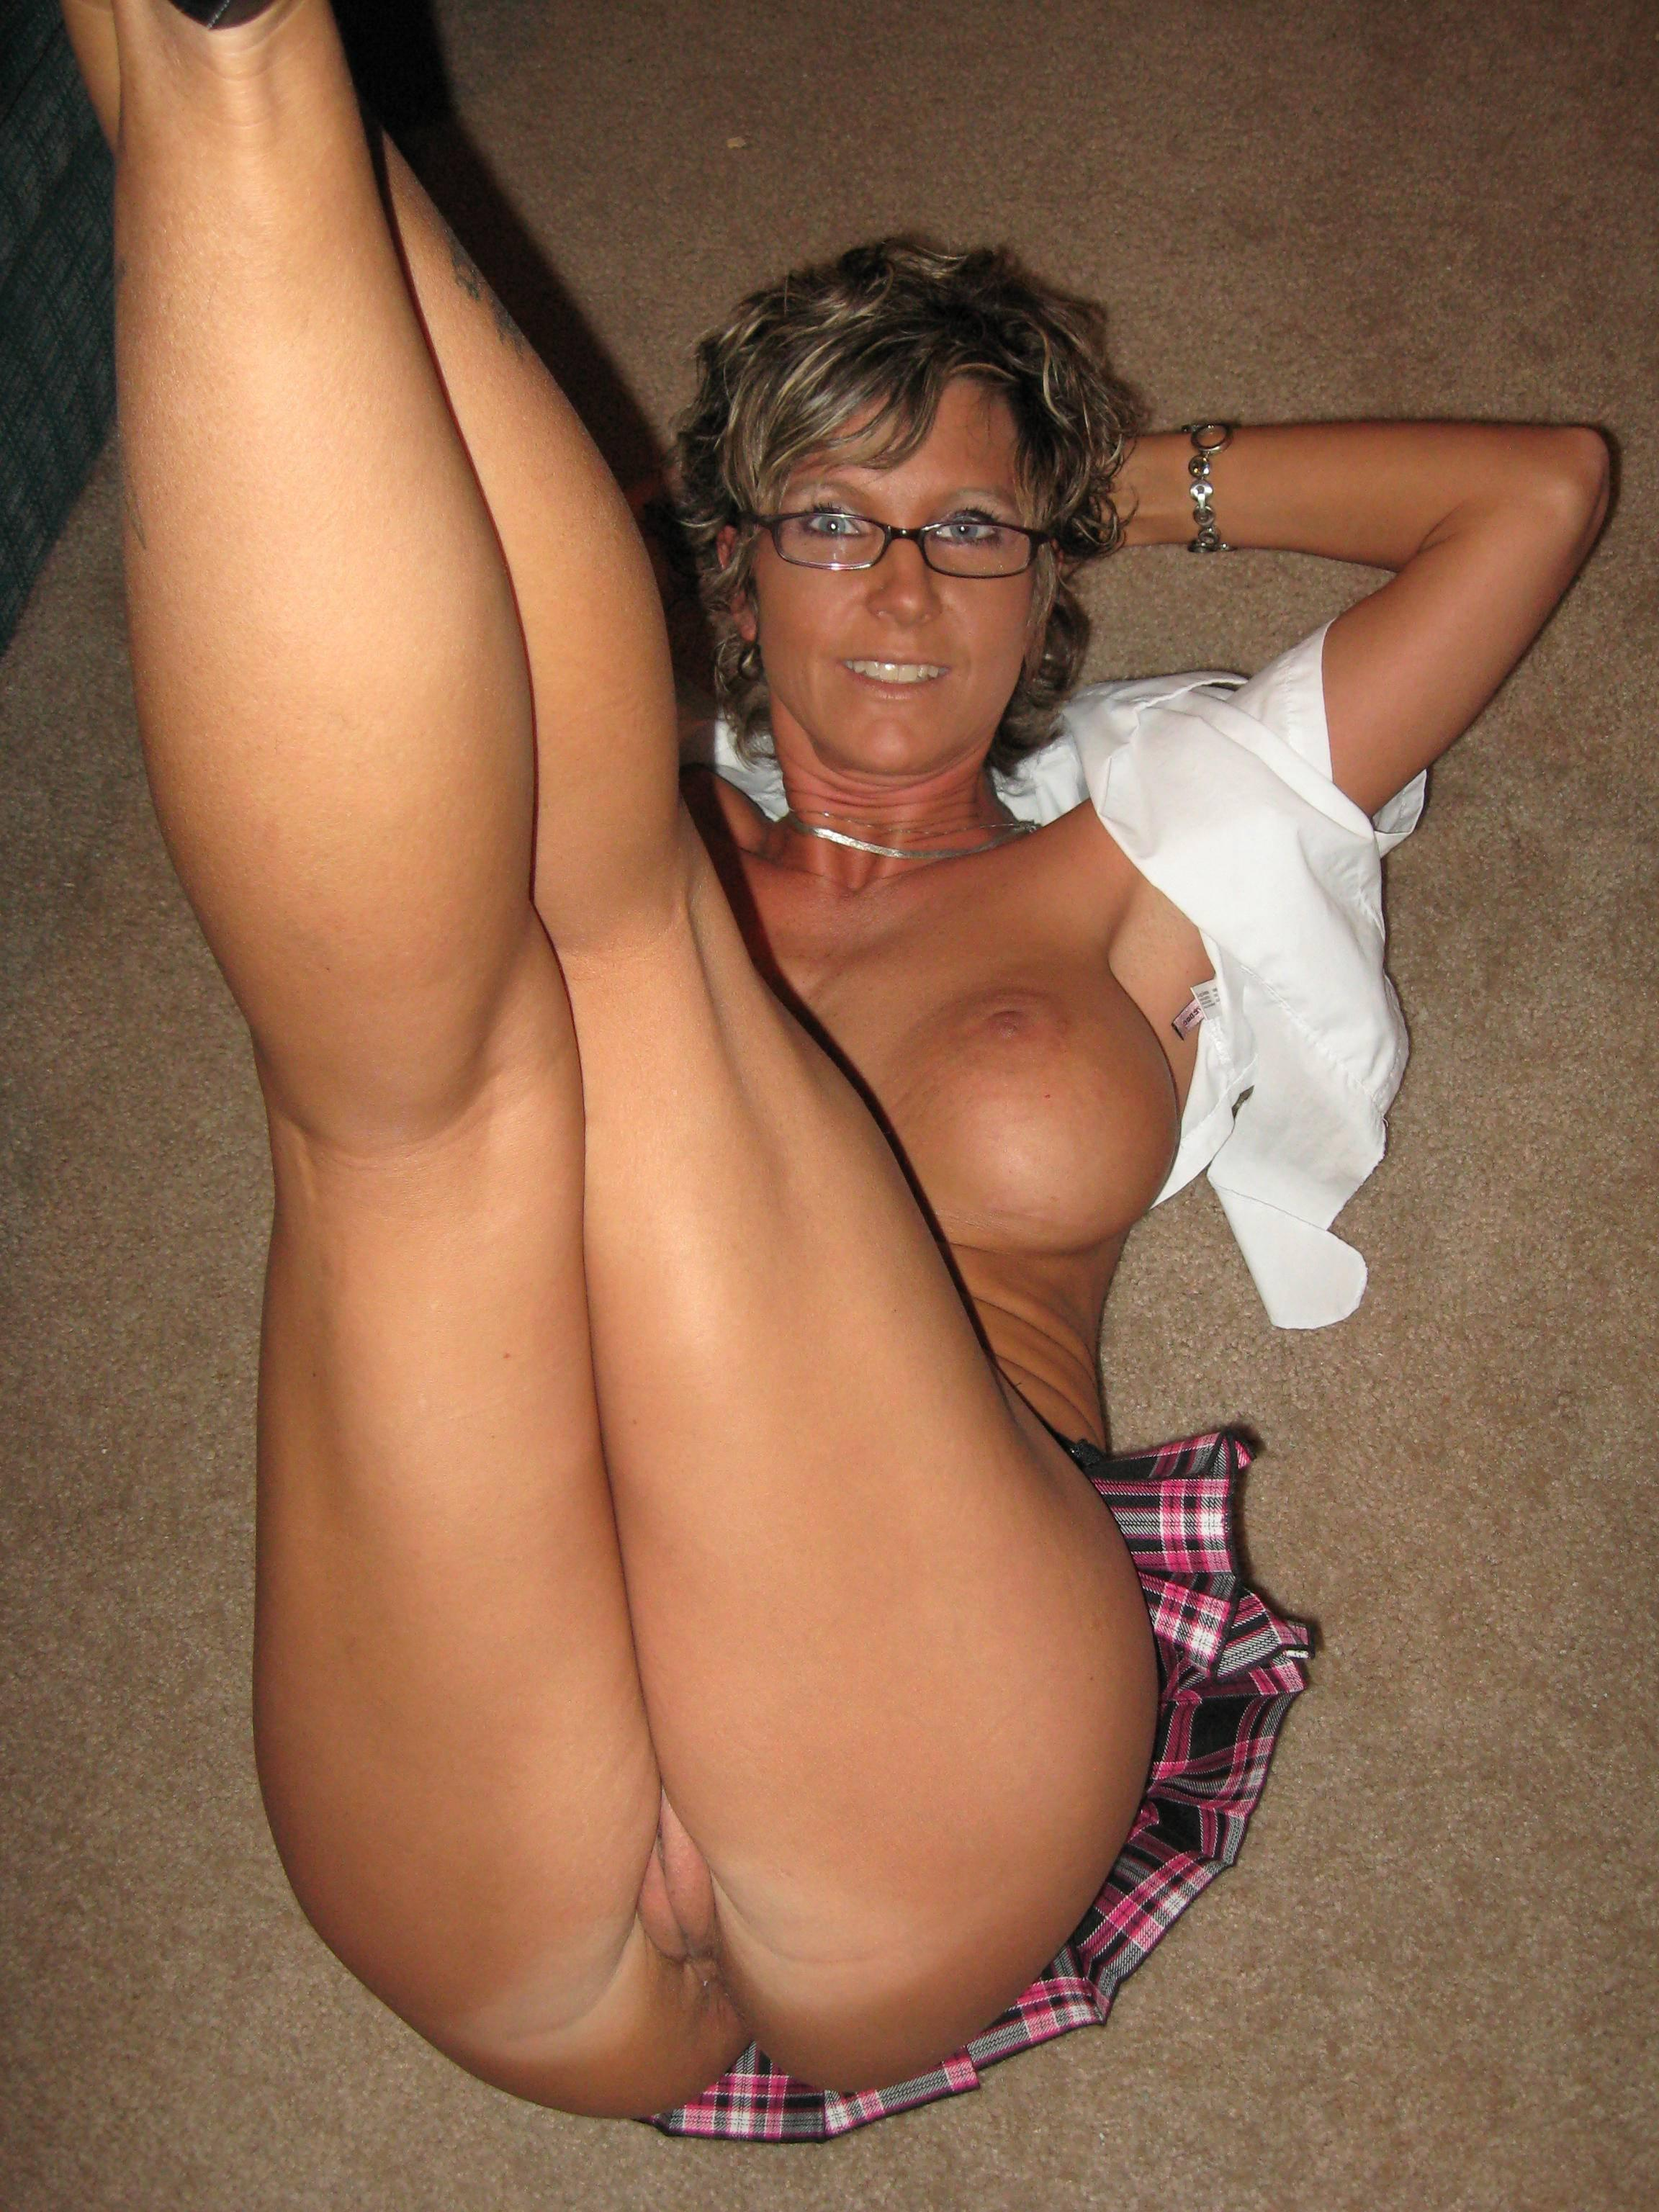 Real Mature Milf Pics Pictures Boobs Showing Cleavage Asin